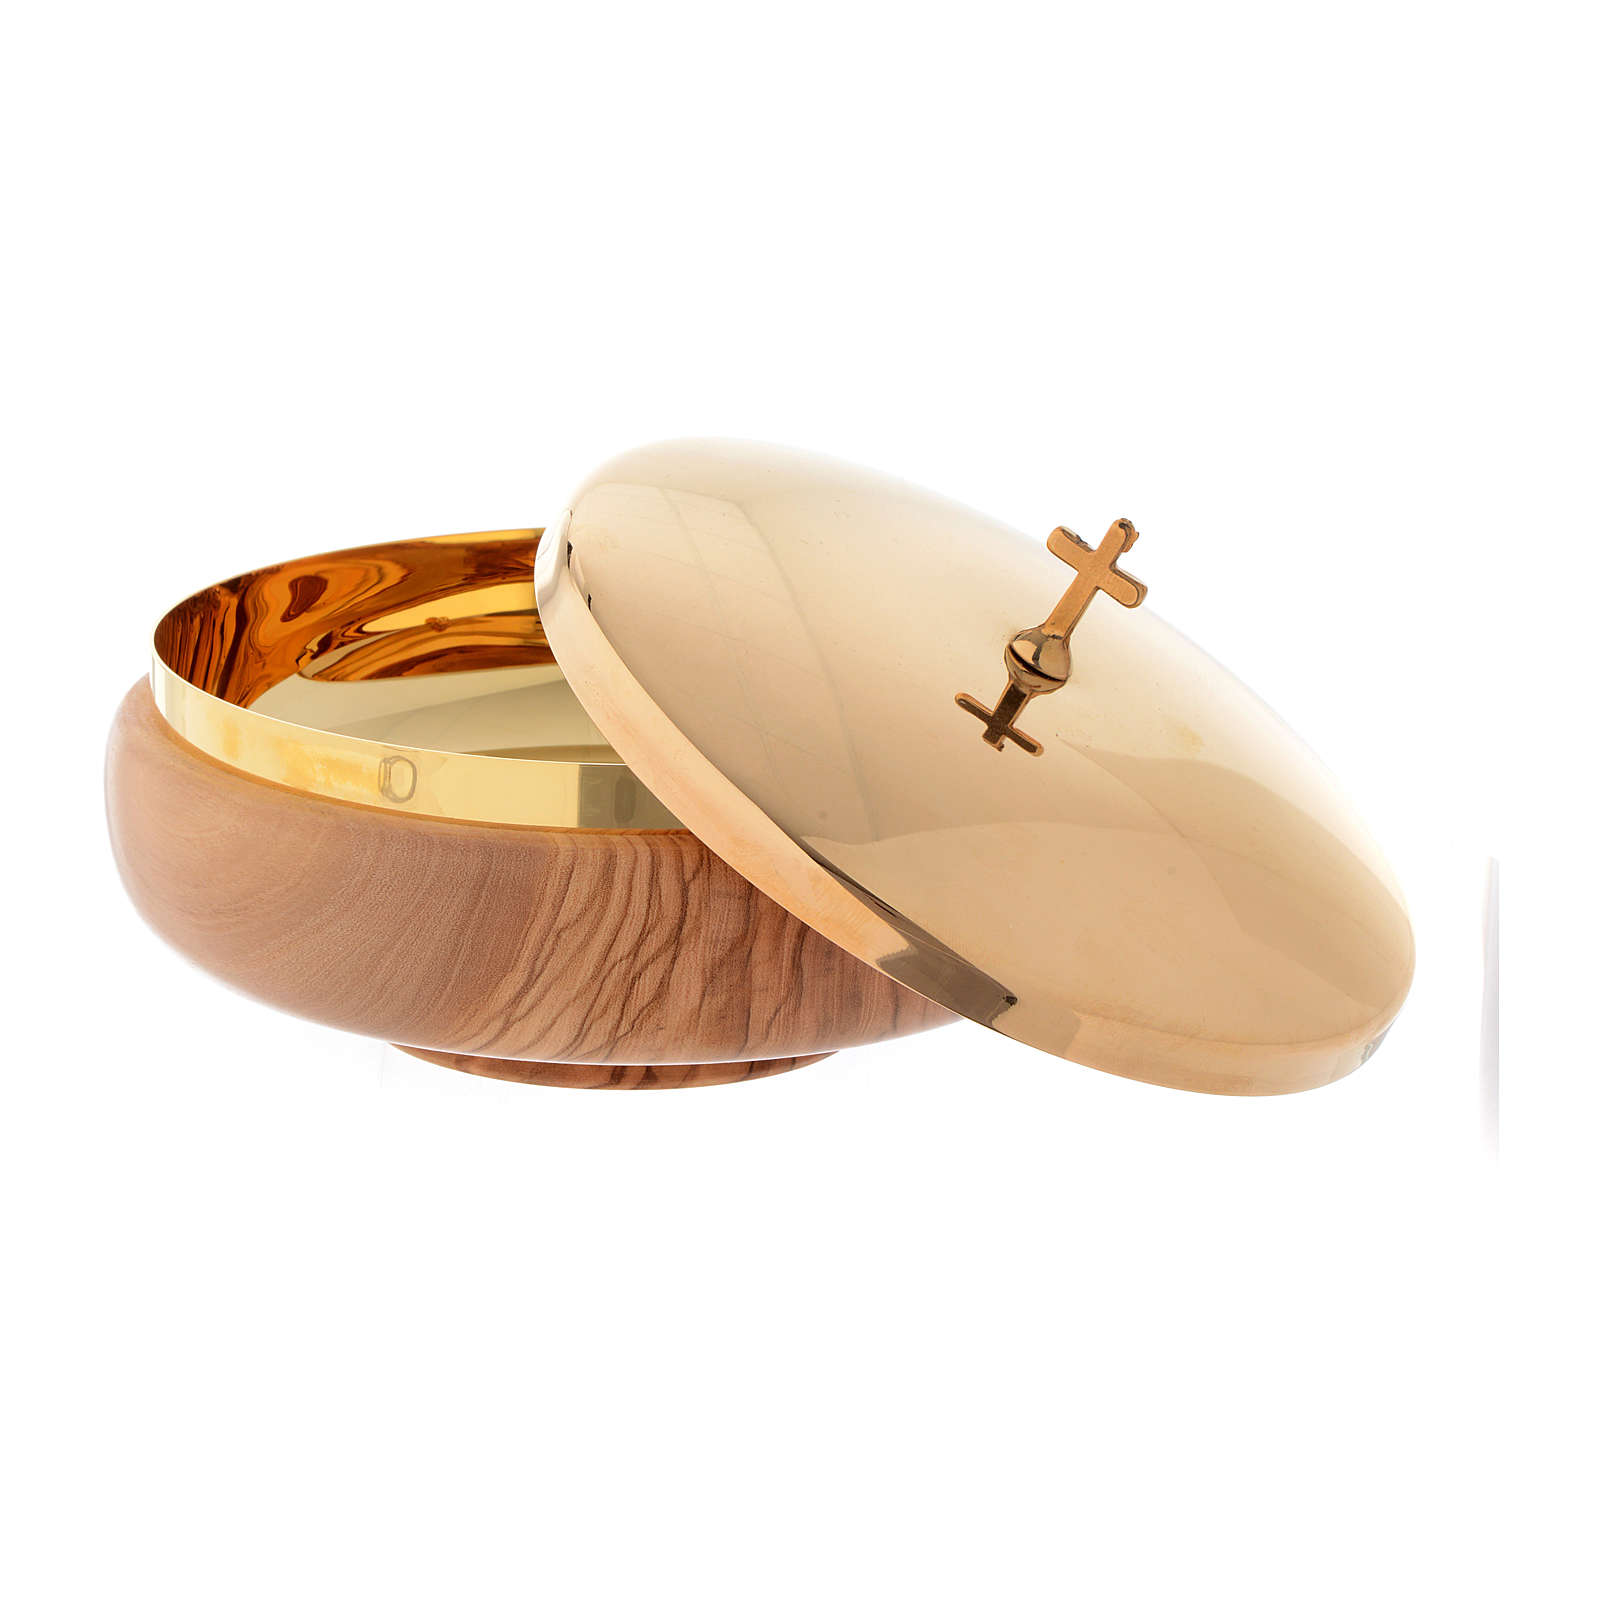 Offertory paten in Assisi seasoned olive wood 4